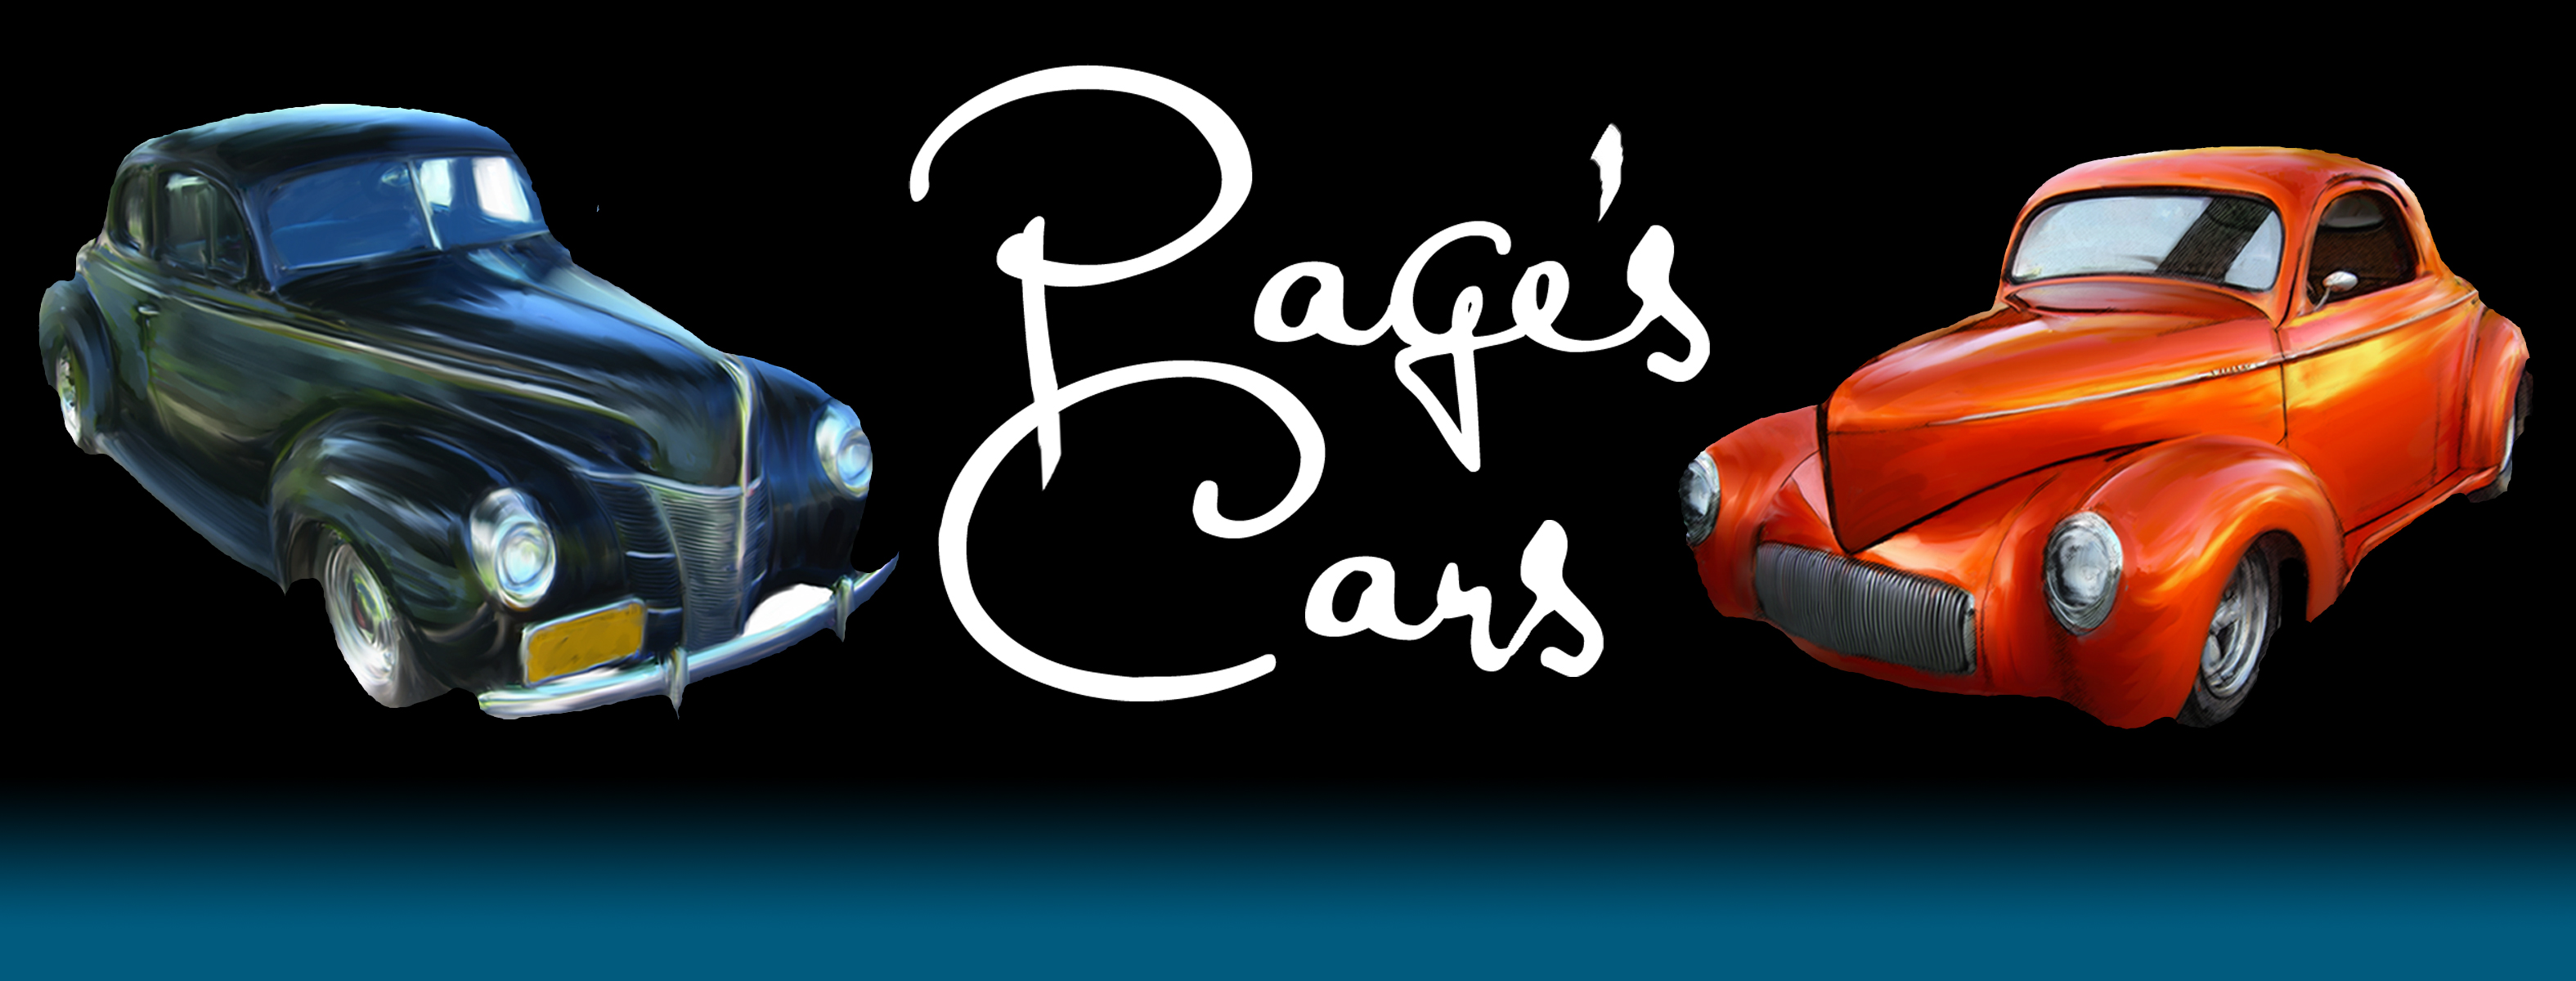 Page's Cars